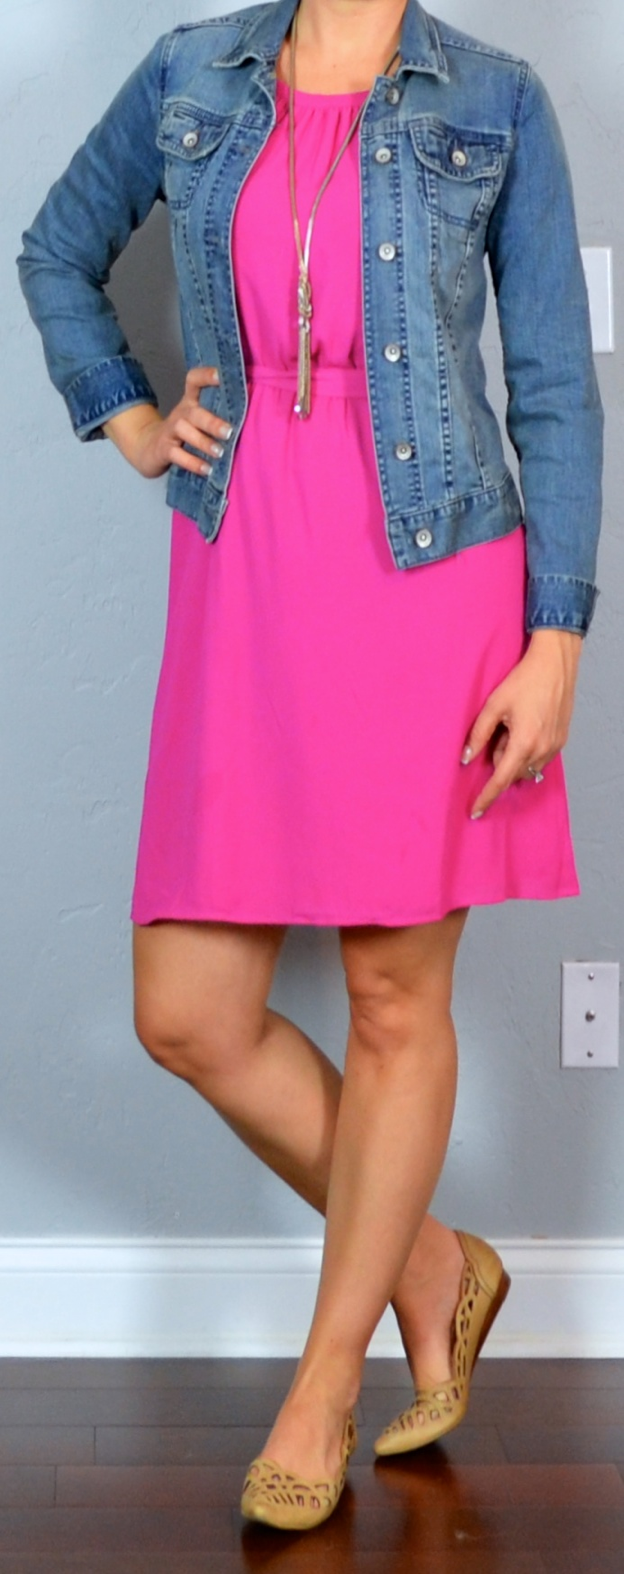 Outfit Posts: outfit post: hot pink dress, jean jacket, nude ...